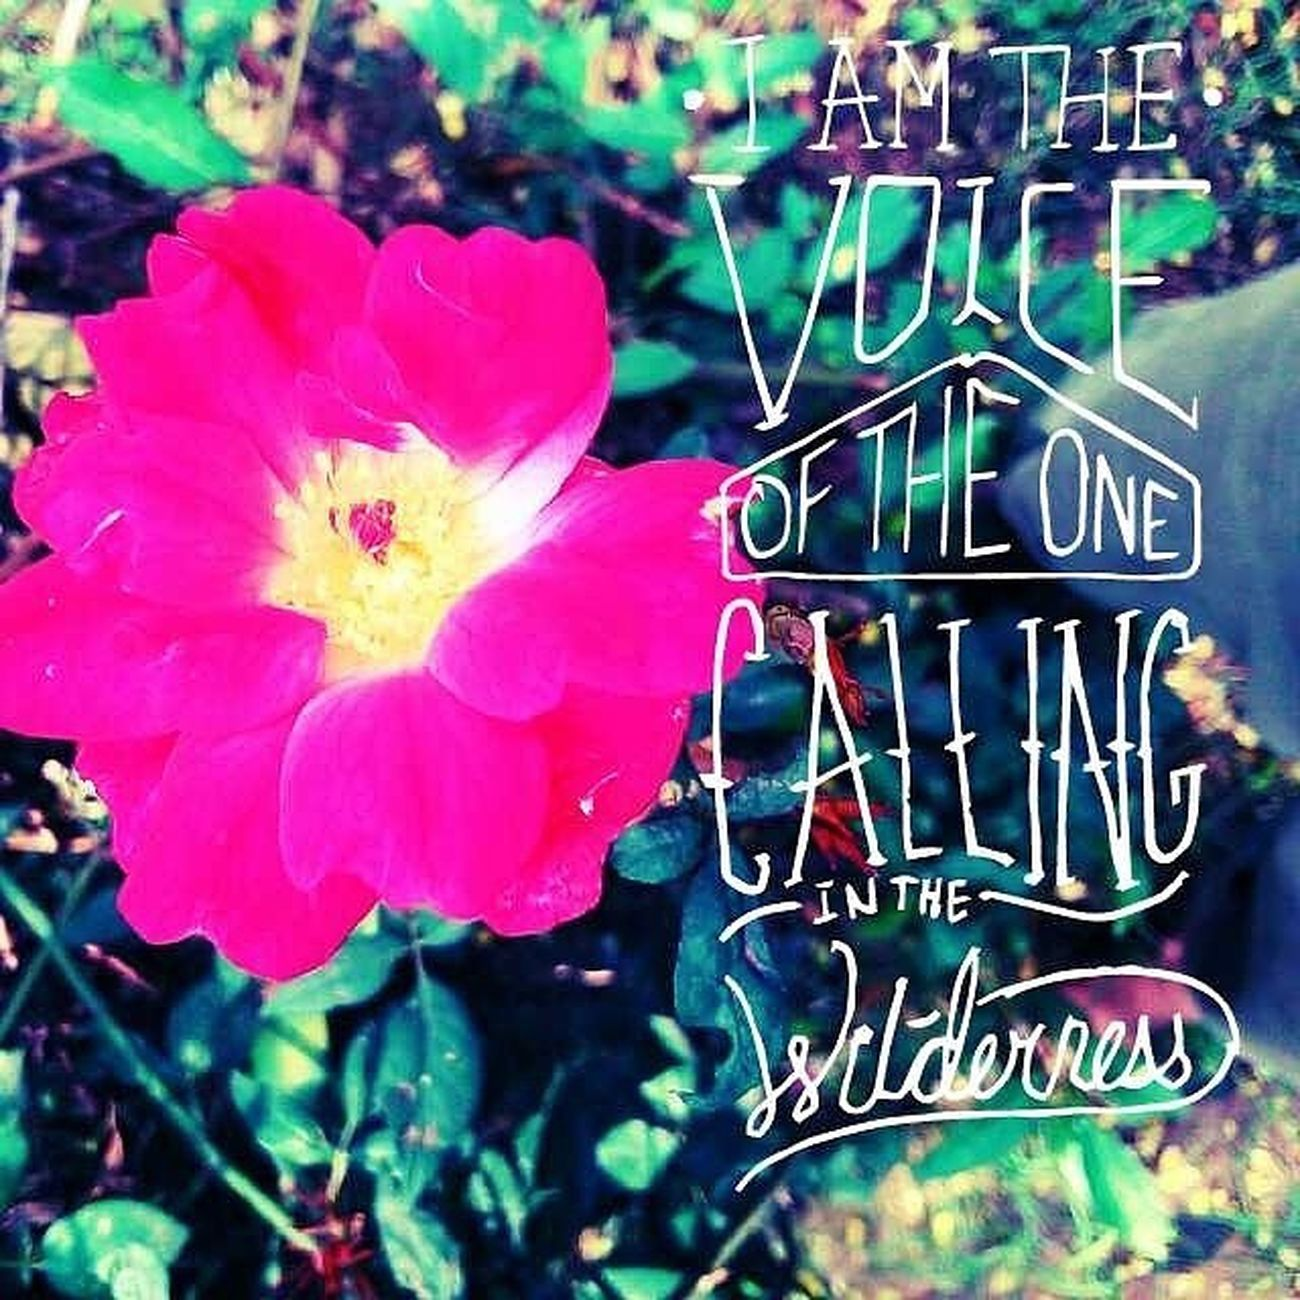 I AM THE VOICE OF THE ONE CALLING WILDERNESS. Desi_diaries After_rain Typographyindia Typography VSCO Vscocam Vscoindia Ahmedabad_instagram Instagram_ahmedabad Lumiaphotography Lumia730